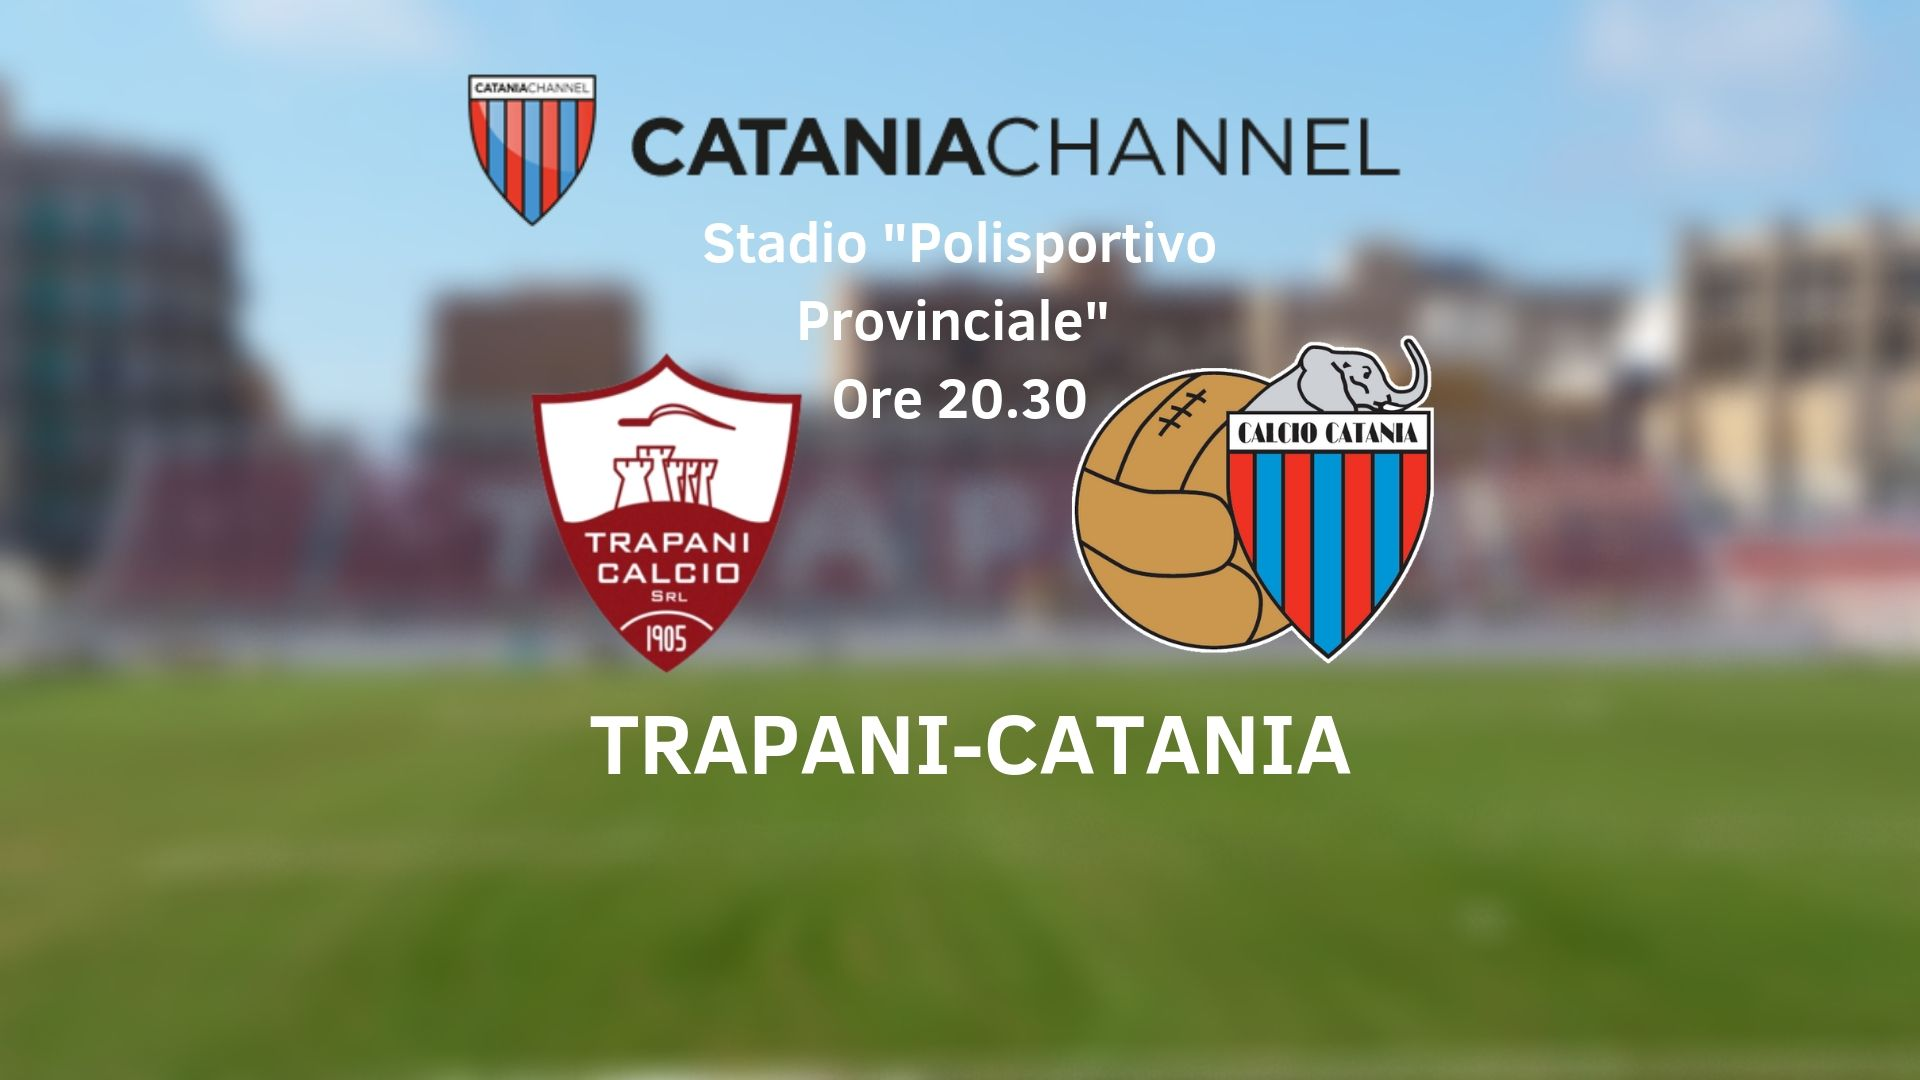 Trapani Catania stadio provinciale play-off